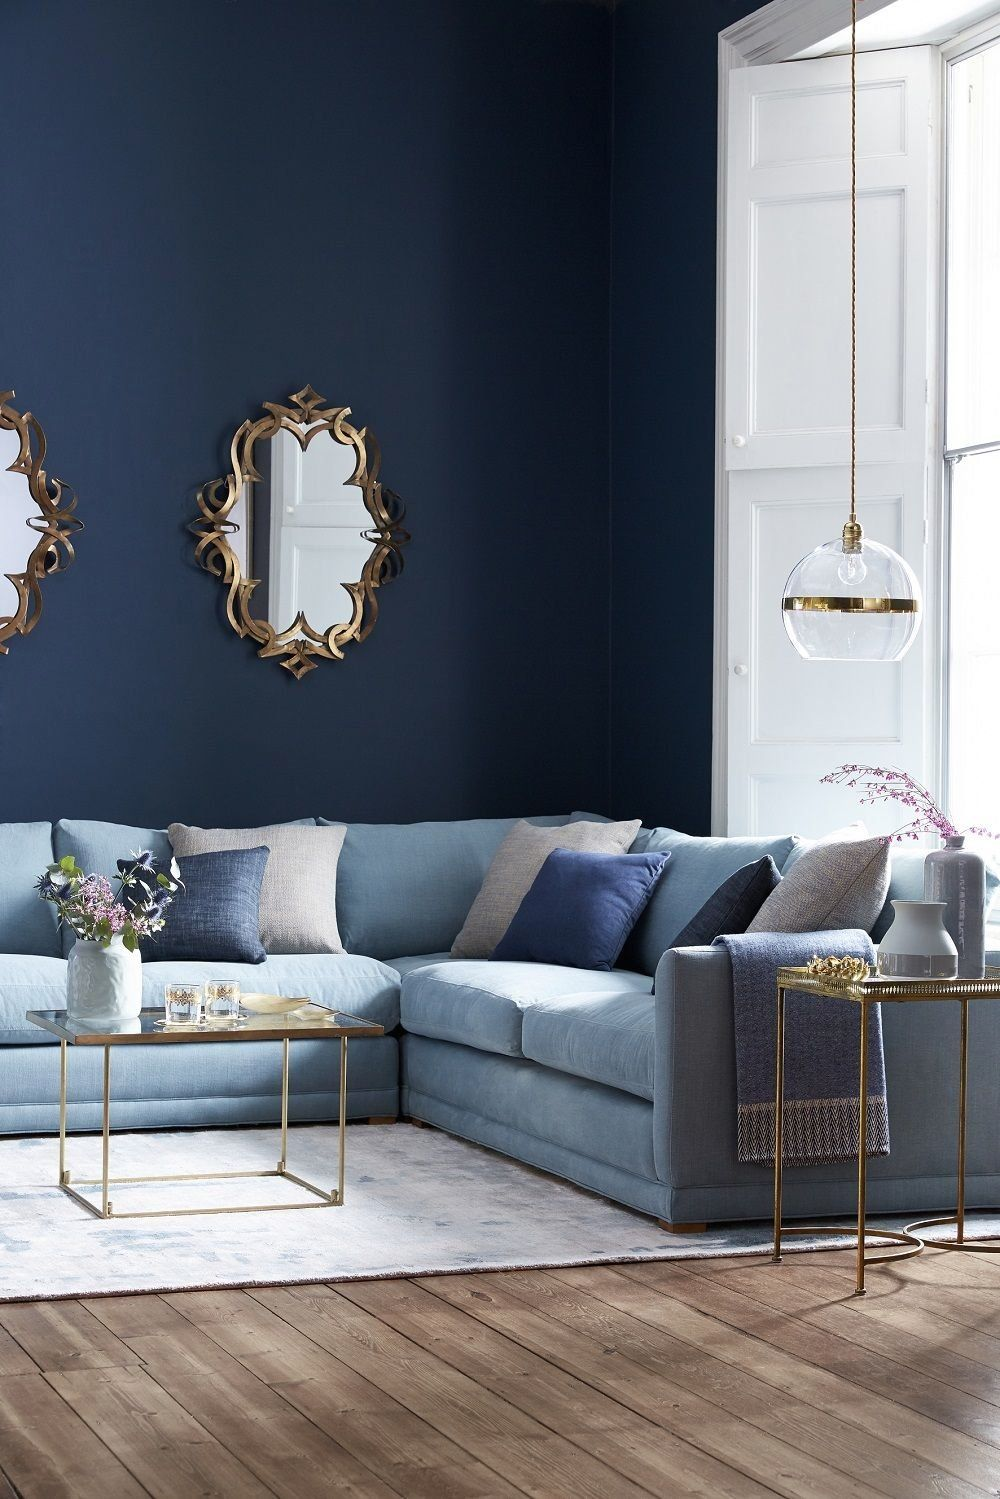 The Aissa Corner Sofa Seats A Lot Of People In A Small Space This Corner Sofa I In 2020 Blue Sofas Living Room Light Blue Sofa Blue Living Room